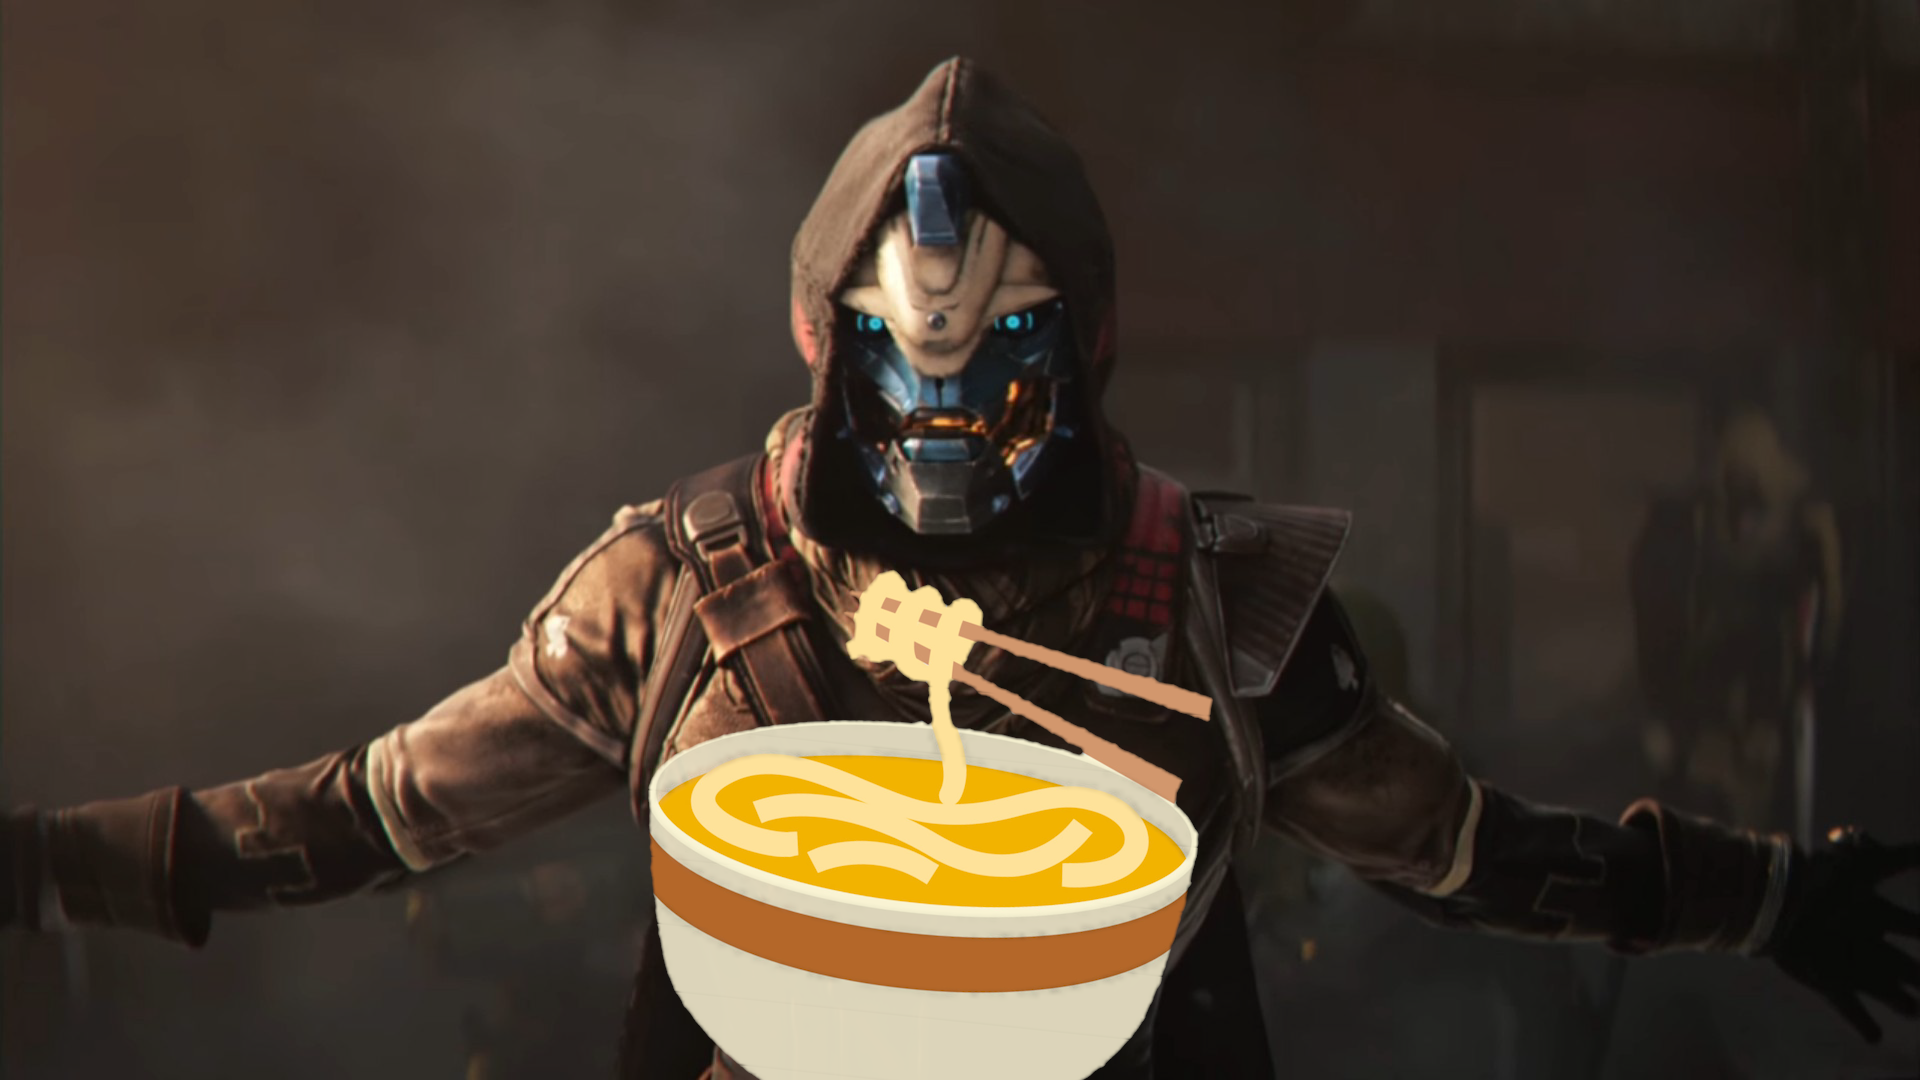 What to do with the Expired Ramen Coupon in Destiny 2